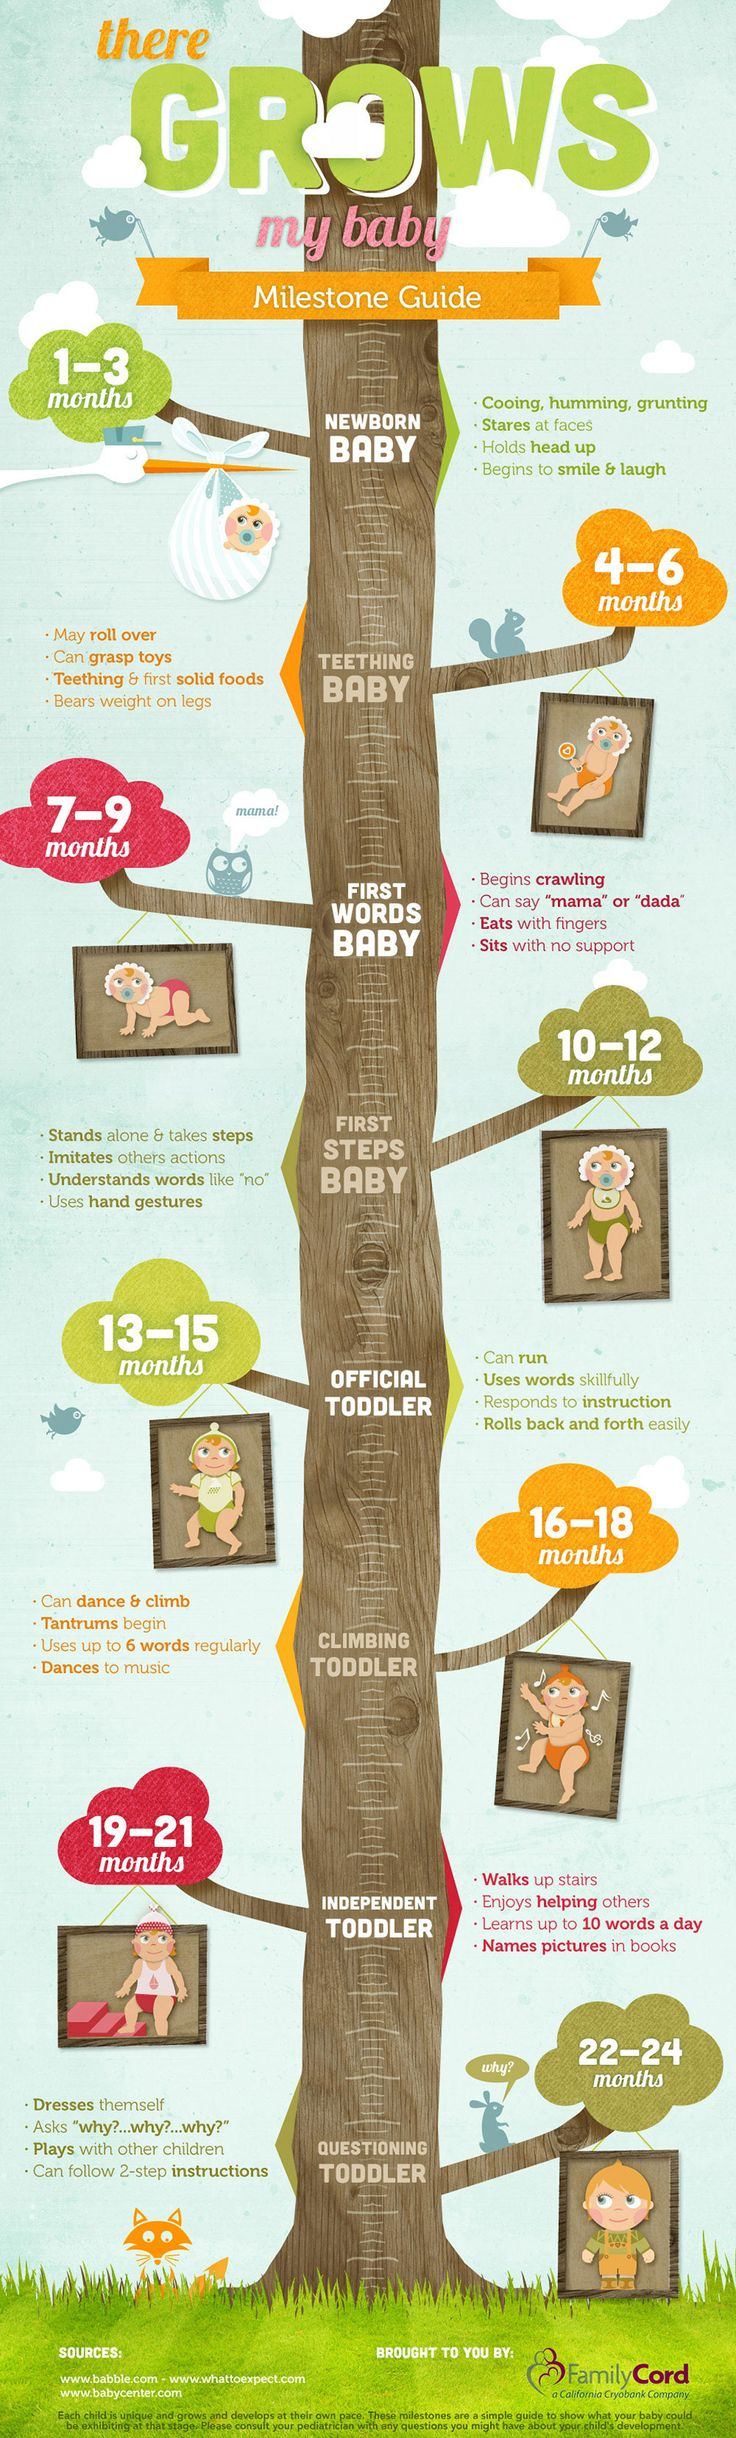 Cute Baby Milestone Chart From 1-24 Months   Ghergich & Co.